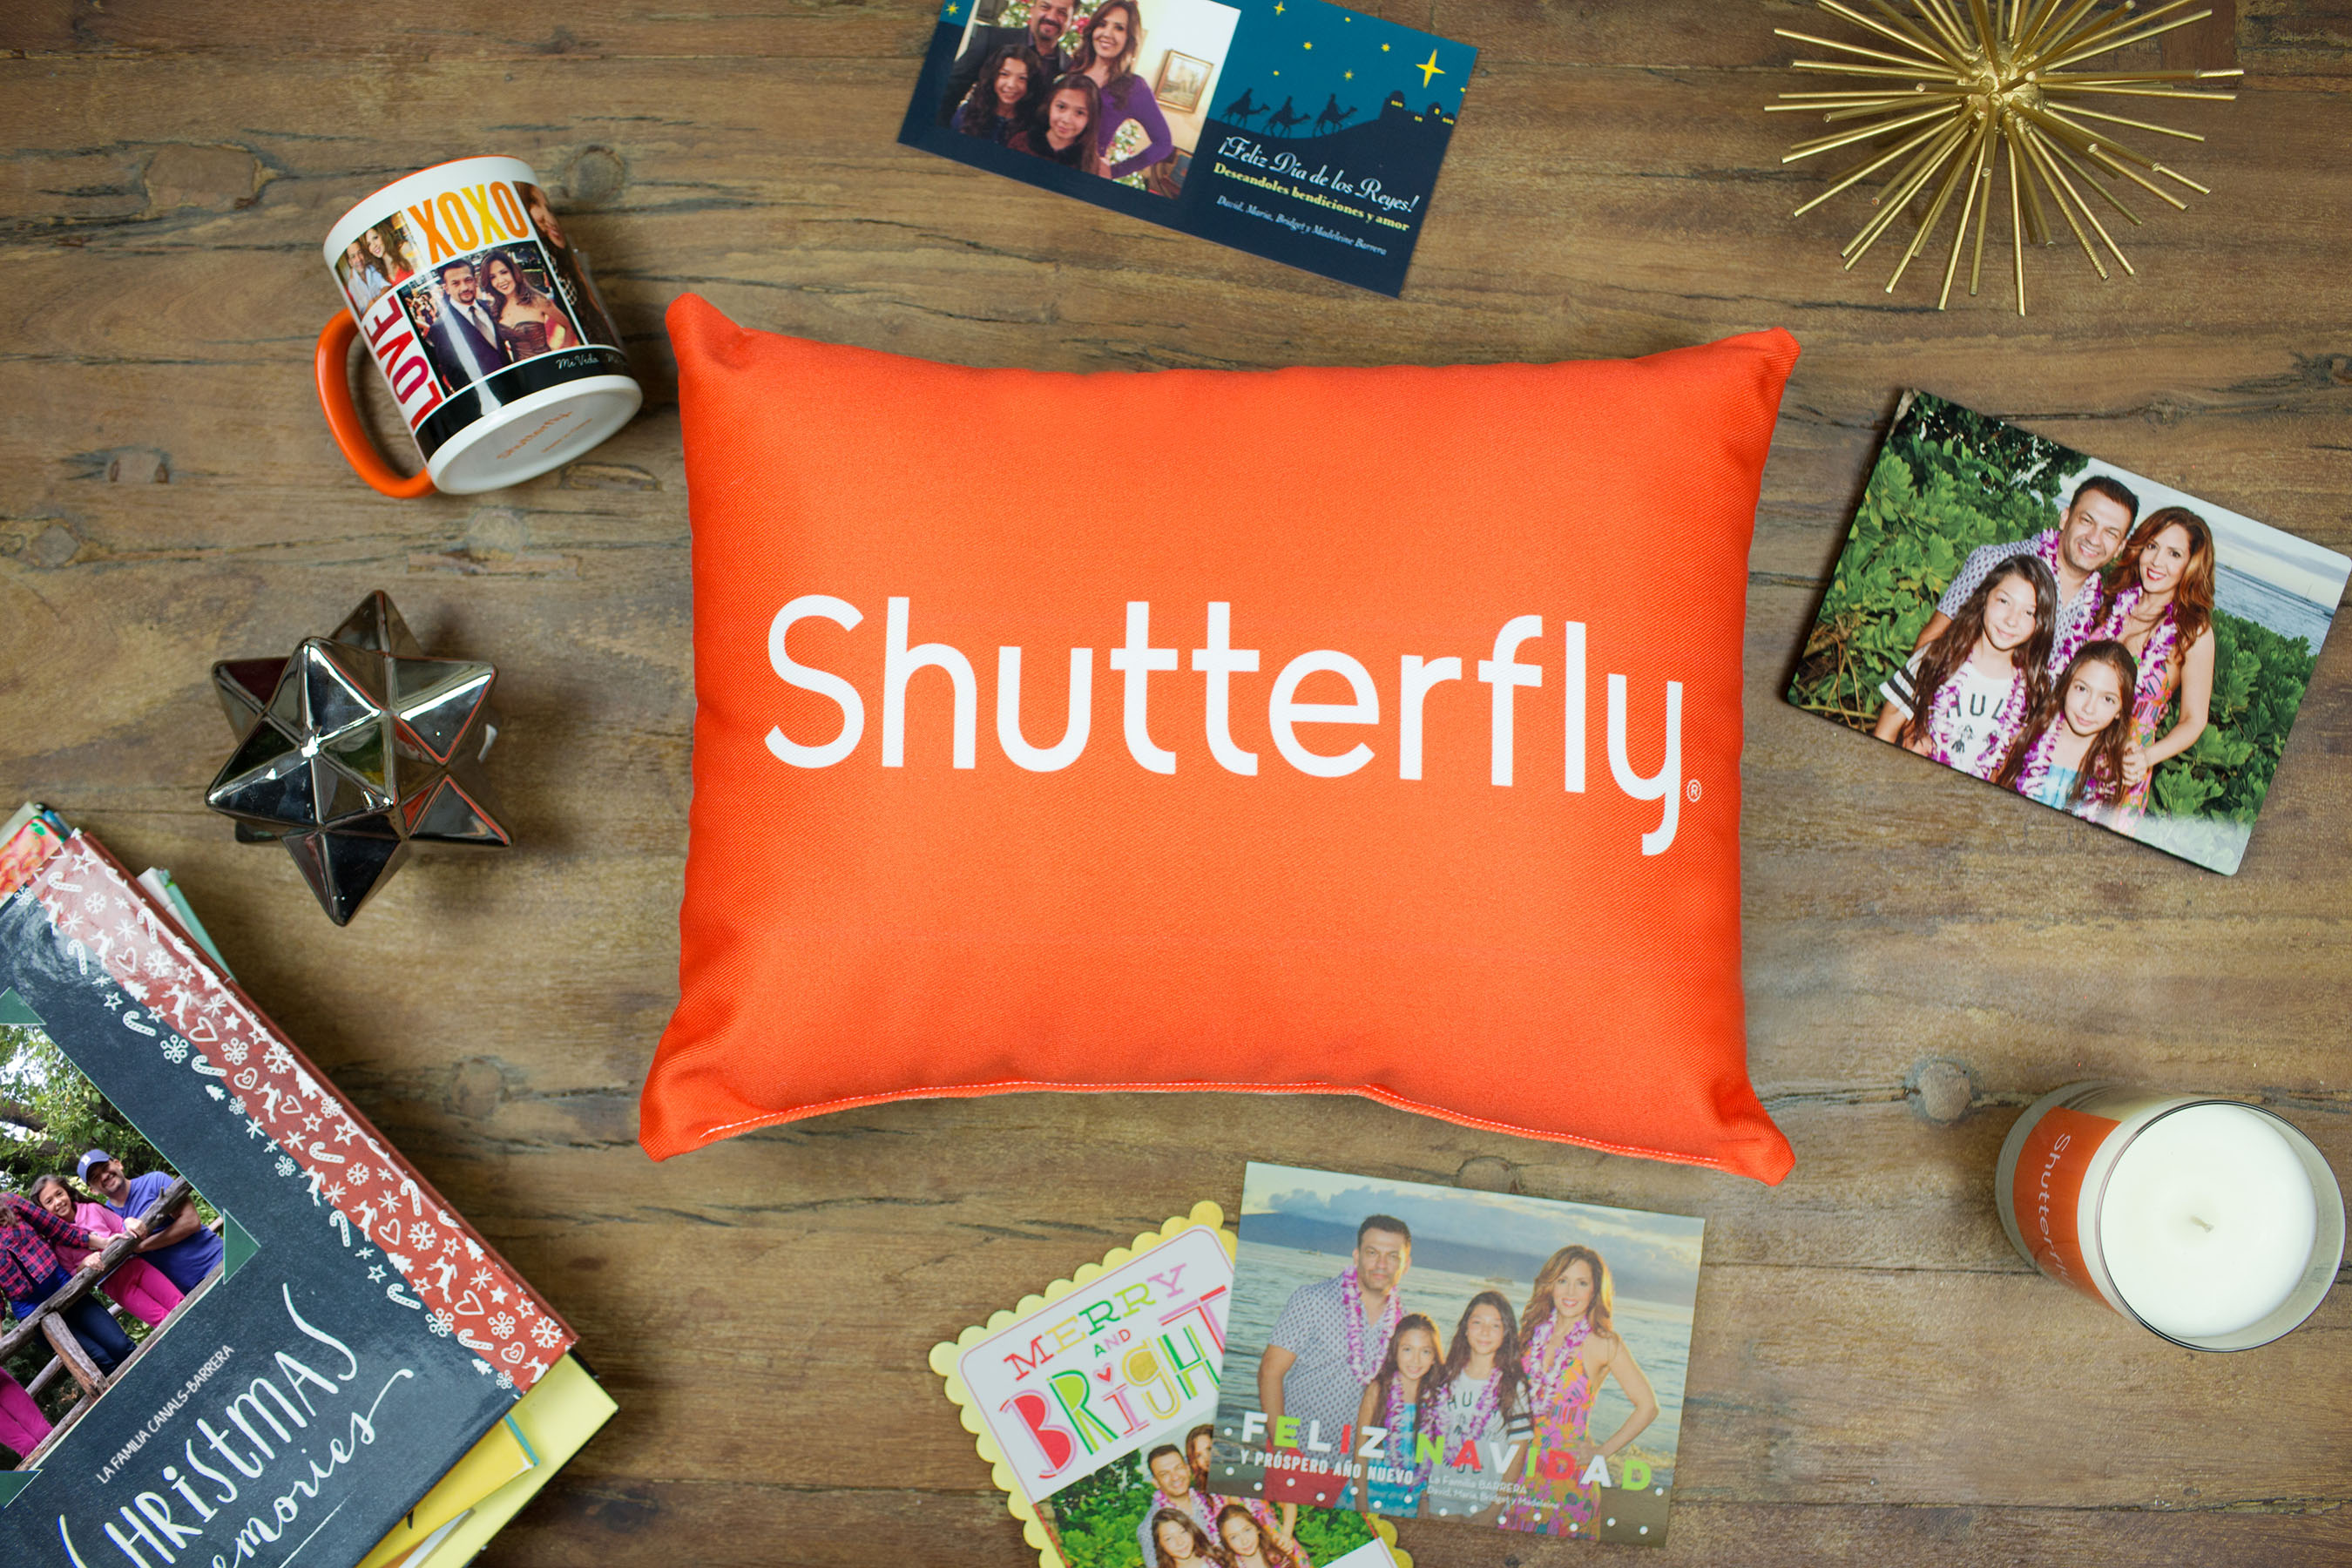 Shutterfly's online photo storage options will always have you smiling for the camera. Unlimited Picture Storage. We are taking more photos than ever—in fact, billions of photos are uploaded to the web every year. At Shutterfly, we want to make sure you preserve all of your memories in one simple spot.